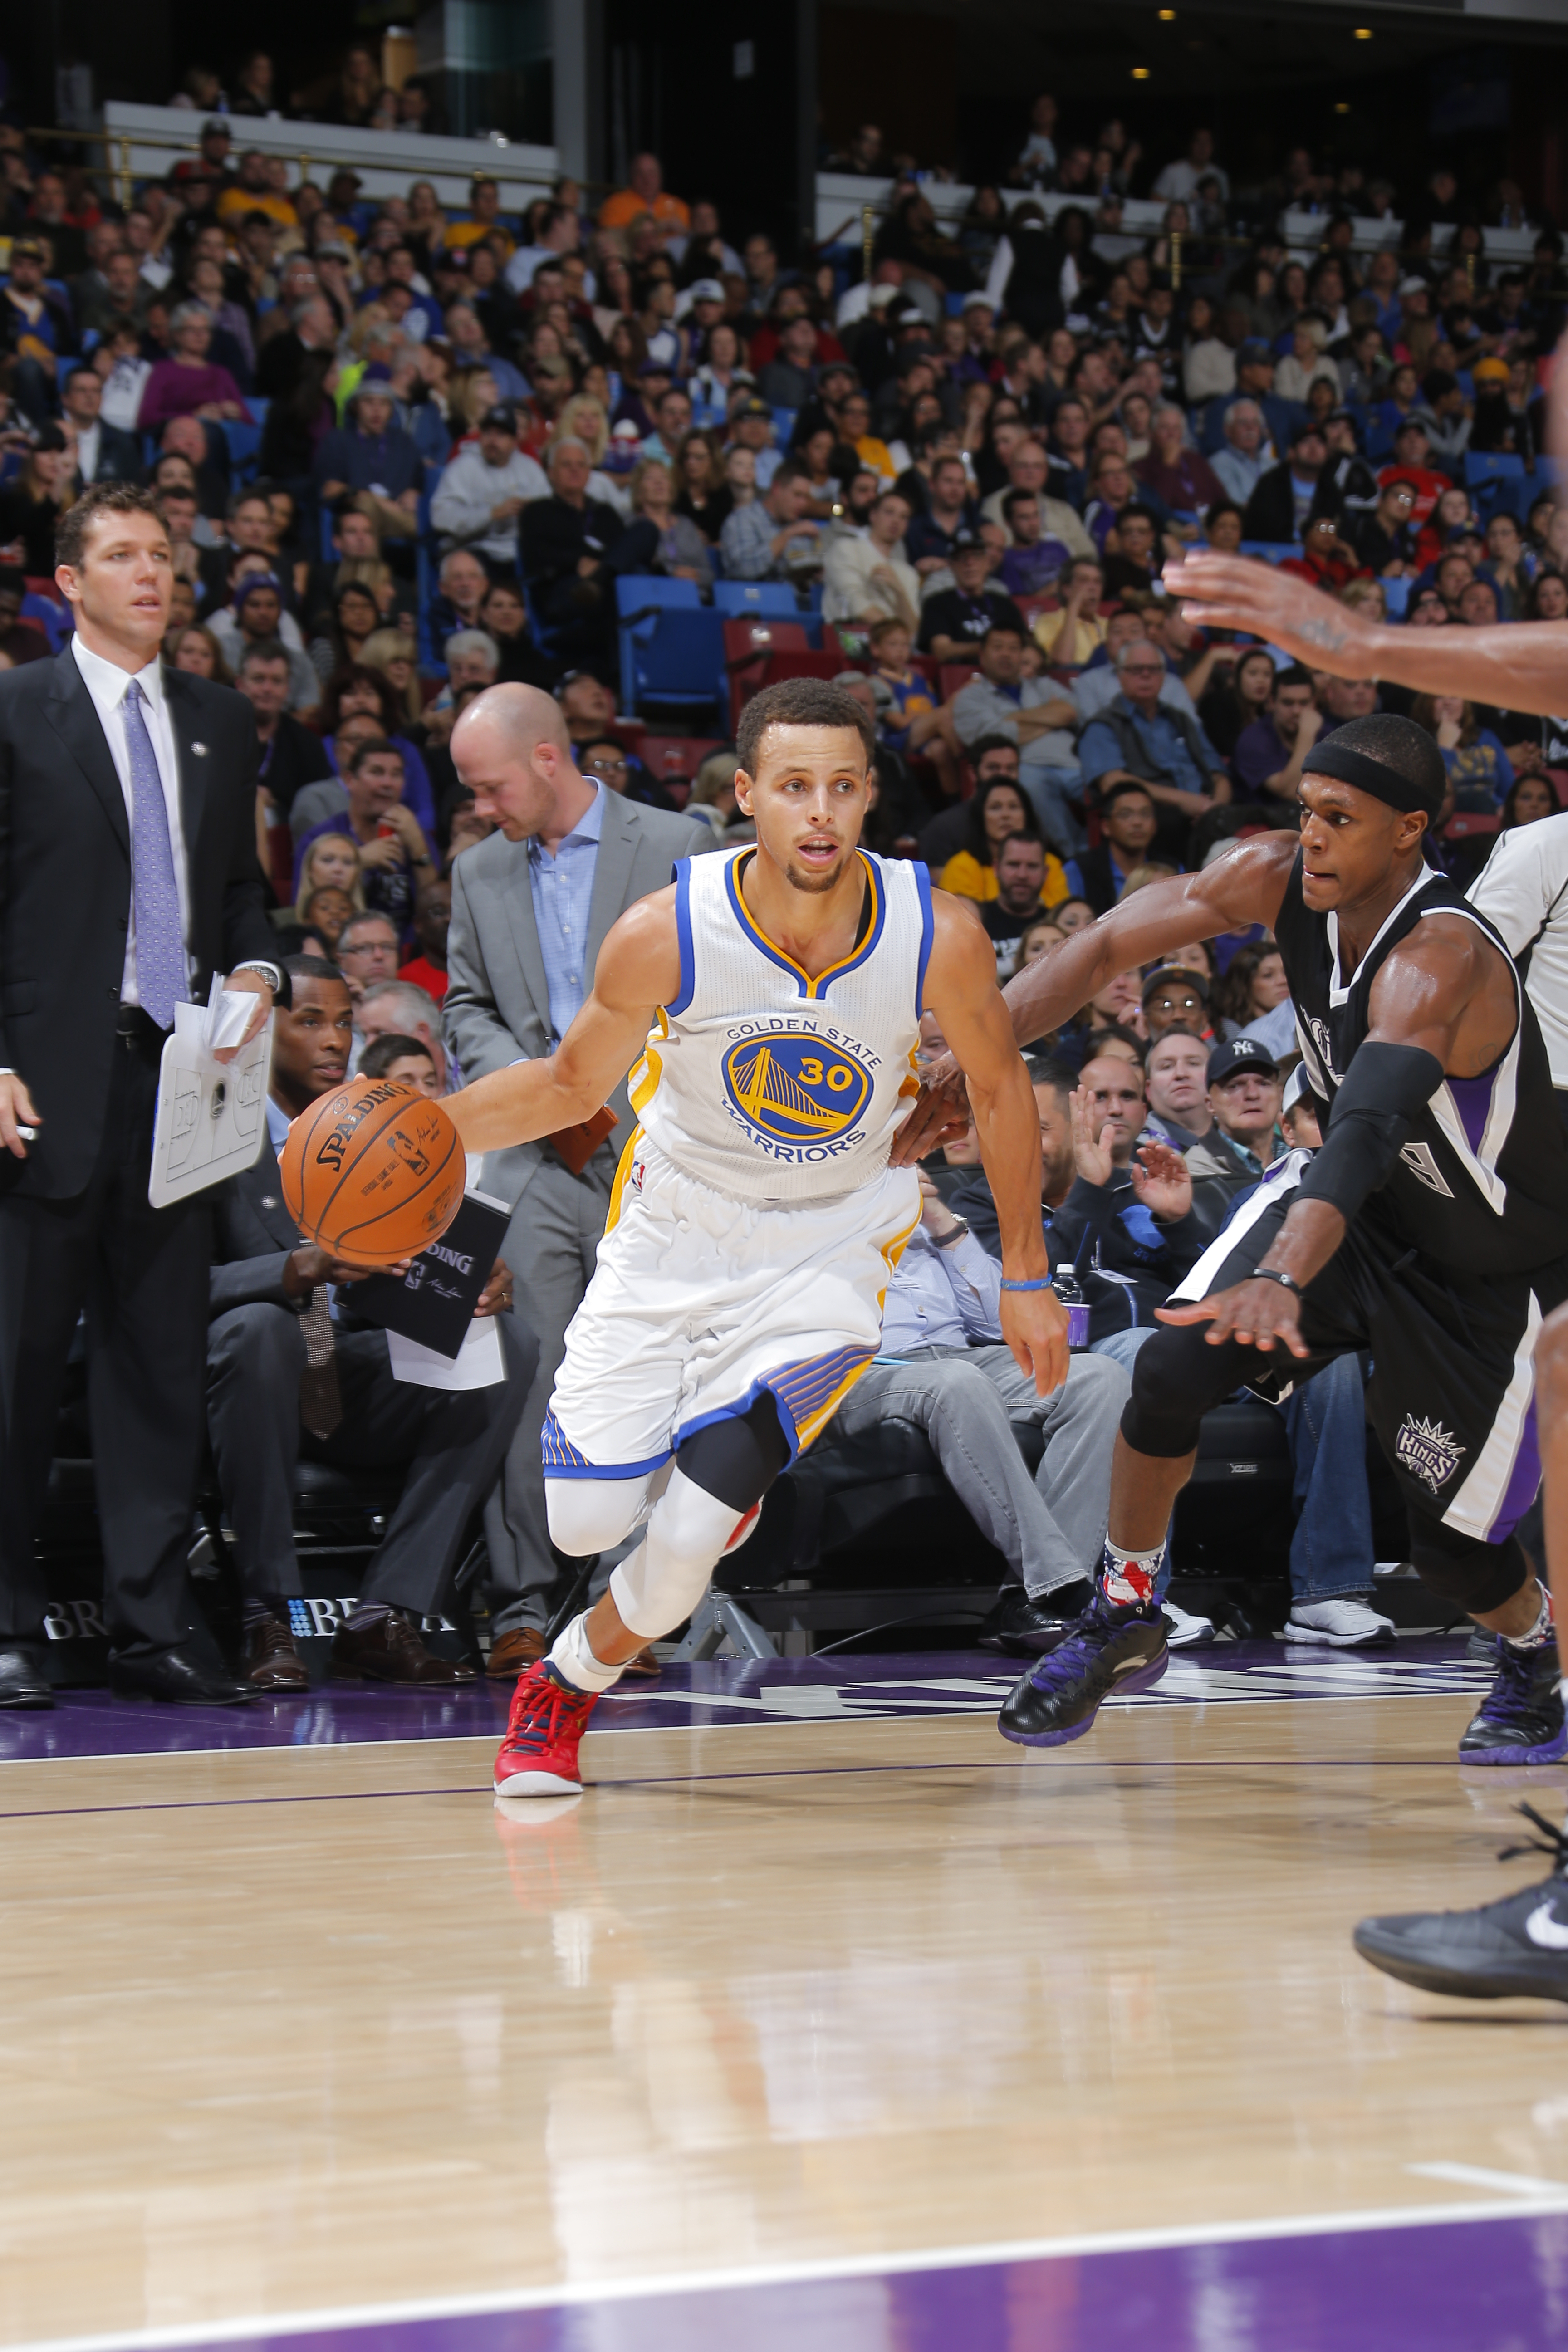 SACRAMENTO, CA - NOVEMBER 7:  Stephen Curry #30 of the Golden State Warriors handles the ball against the Sacramento Kings on November 7, 2015 at Sleep Train Arena in Sacramento, California. (Photo by Rocky Widner/NBAE via Getty Images)